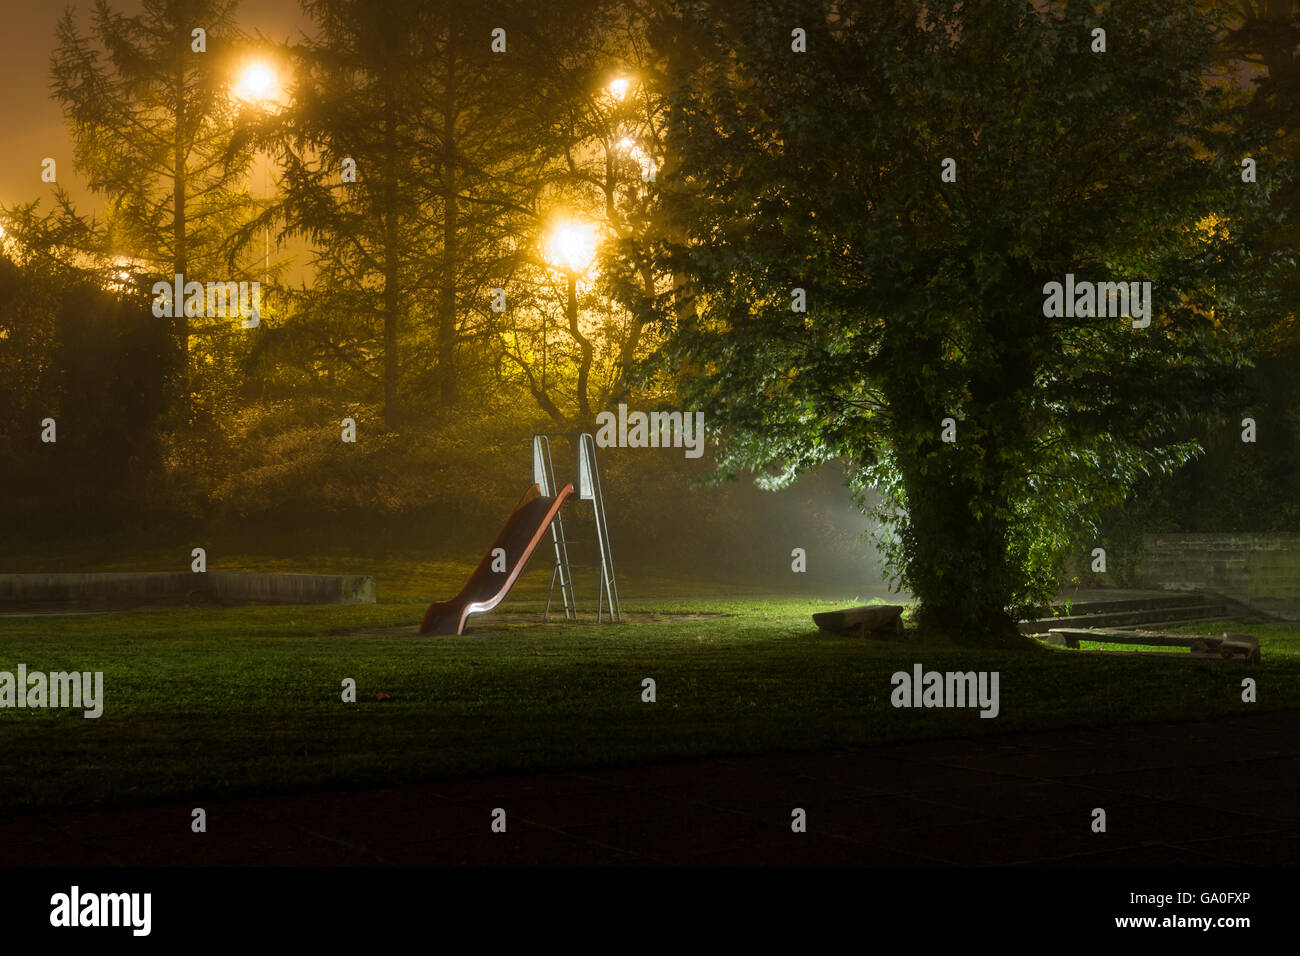 an empty playground with a red slide at night with fog and creepy atmosphere - Stock Image